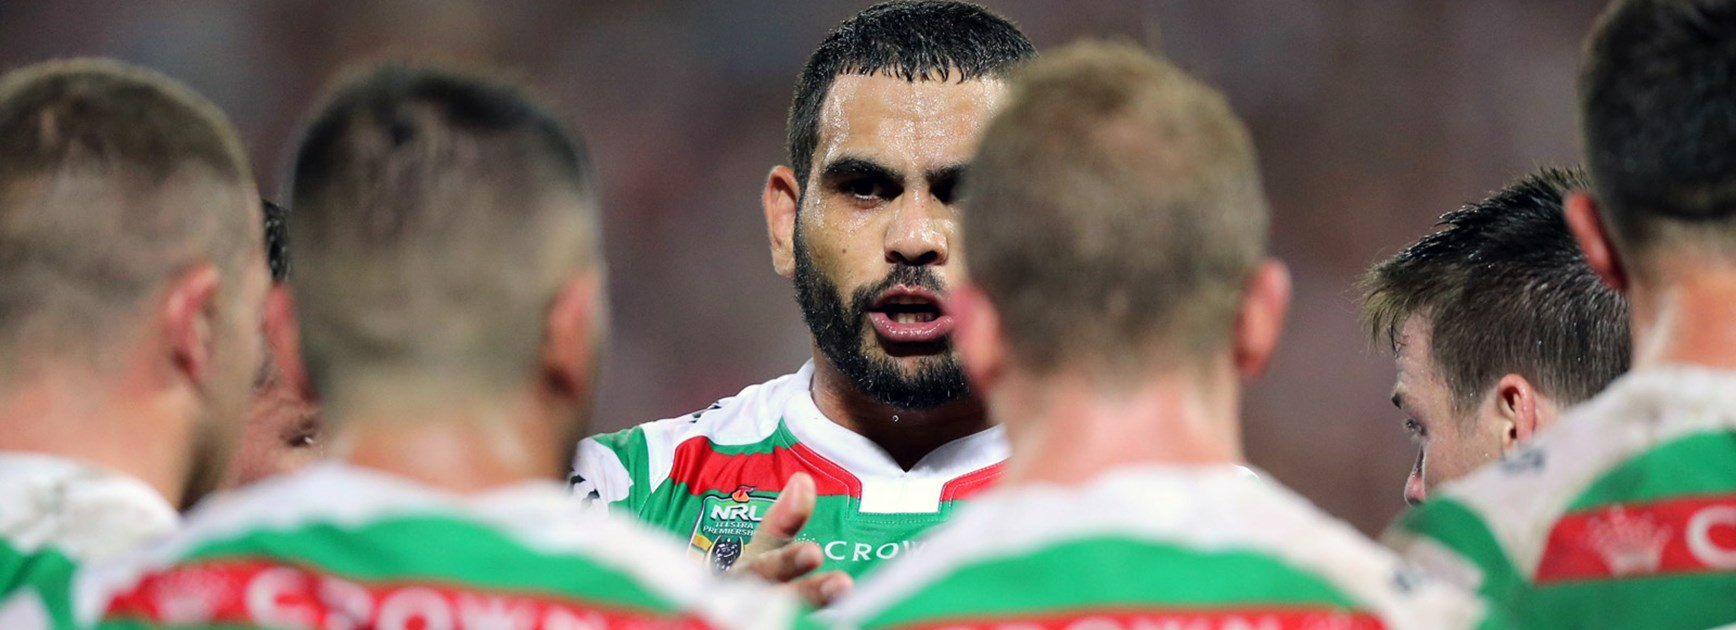 Souths captain Greg Inglis addresses his team in Round 8.